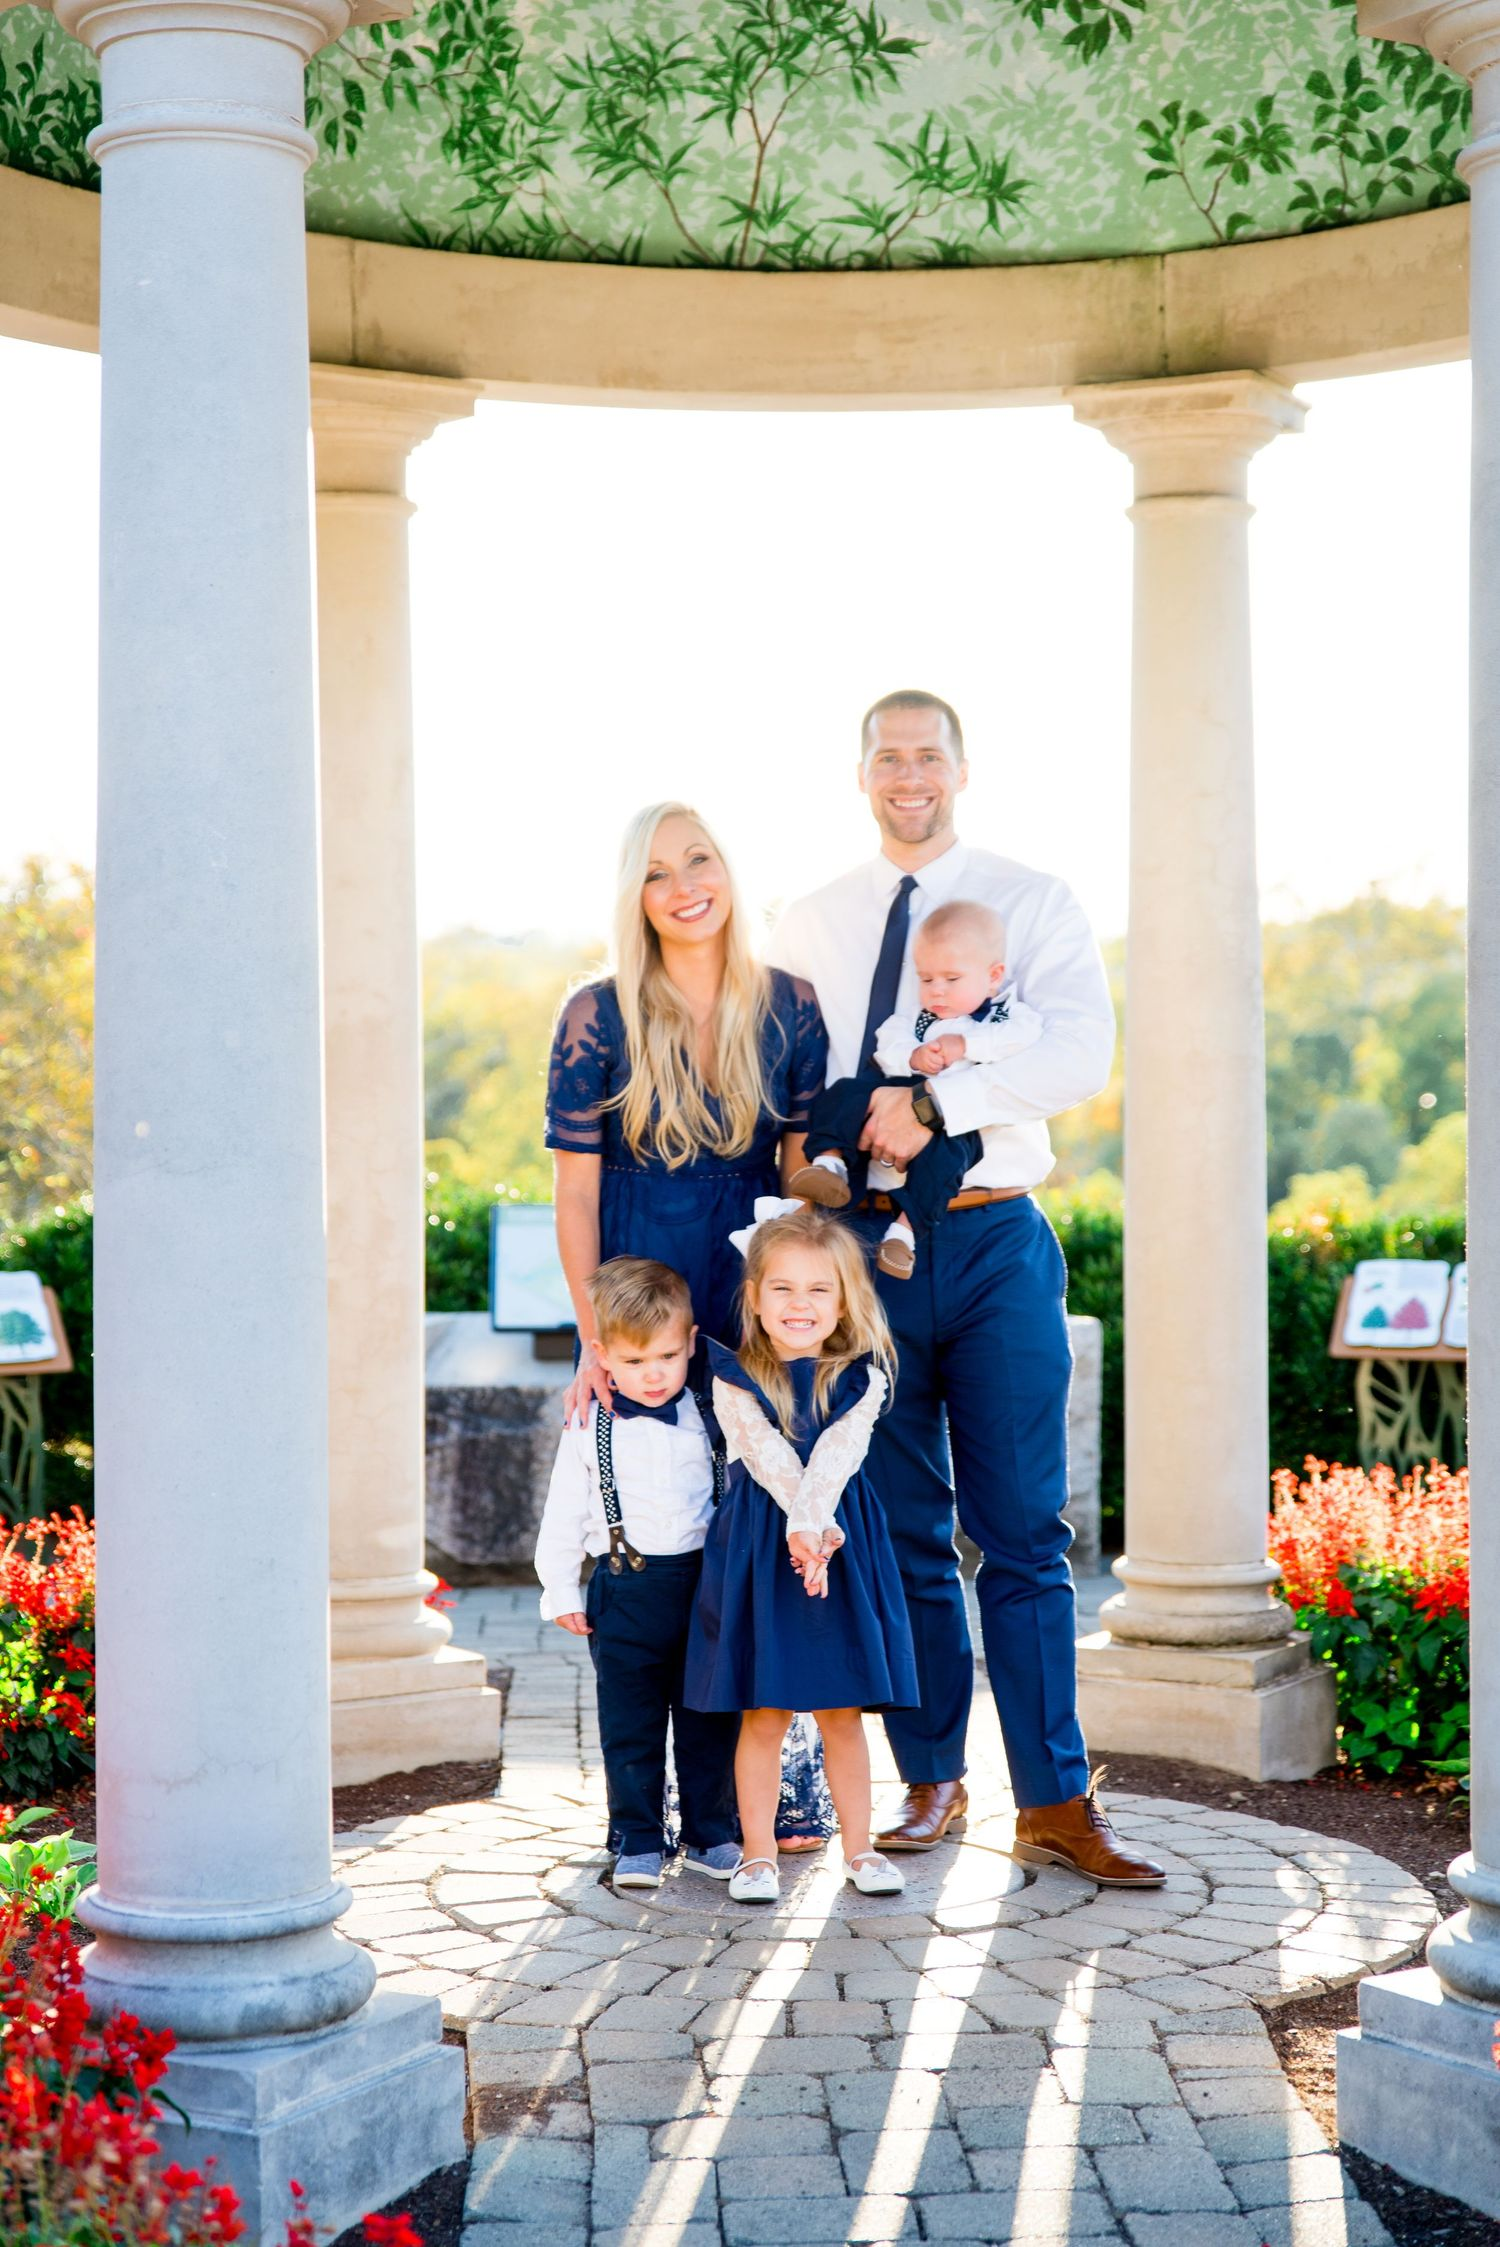 two parents and three young children dresses in white and navy gather in close and smile under a gazebo at sunset